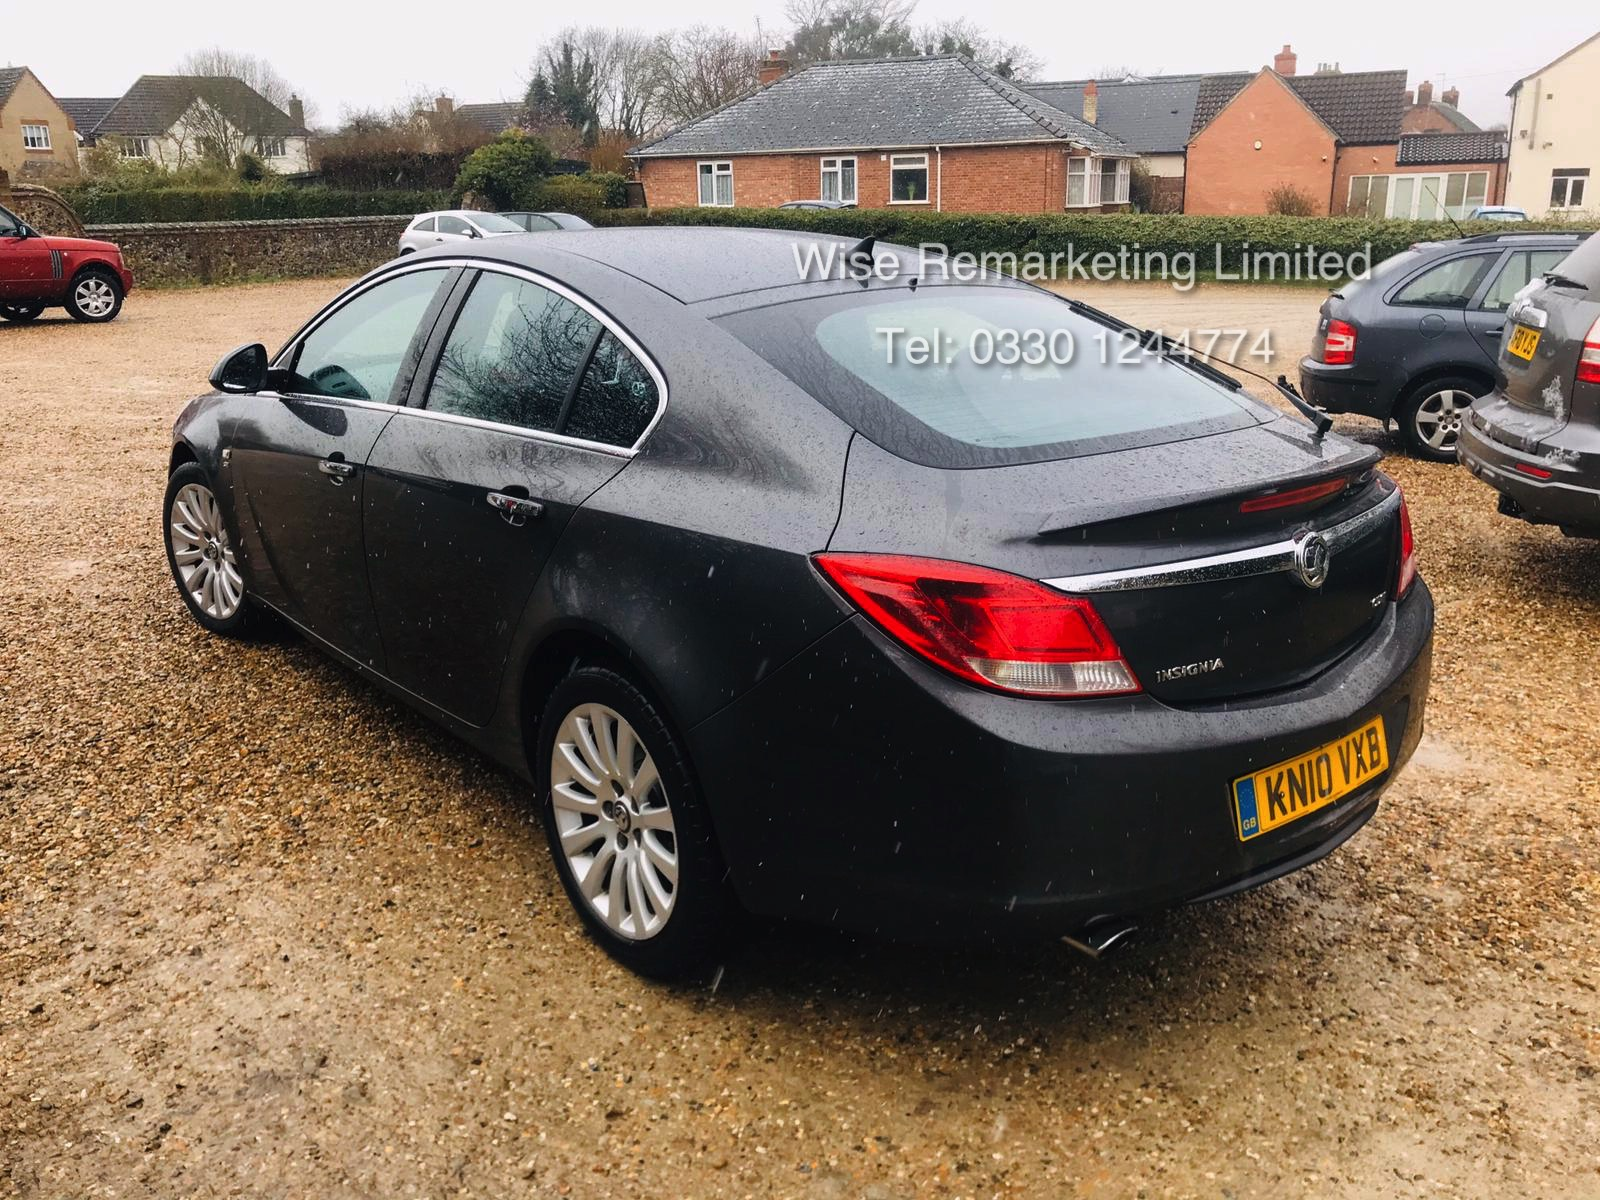 (RESERVE MET) Vauxhall Insignia 2.0 CDTi Special Equipment - 2010 10 Reg - 1 Owner From New - Image 3 of 23